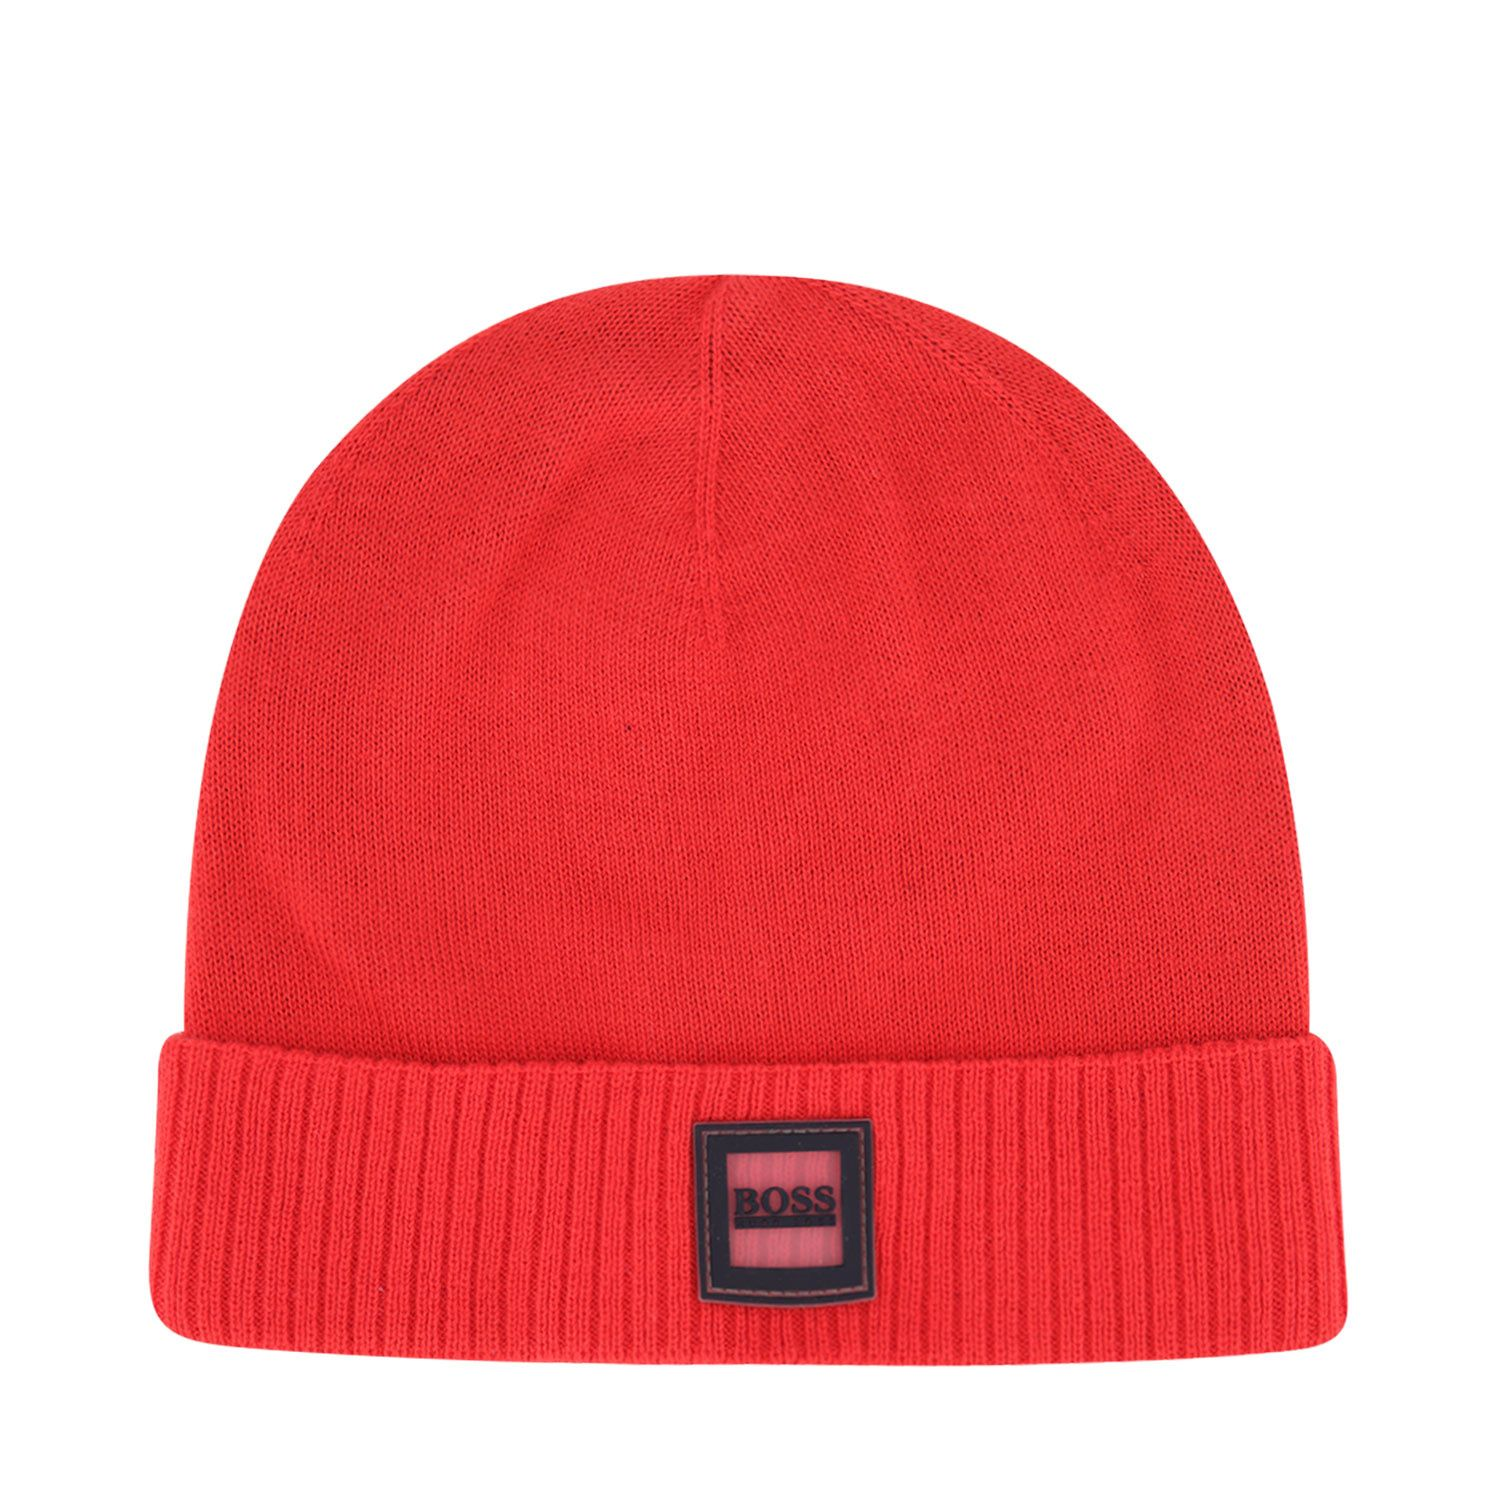 Picture of Boss J01120 baby hat red